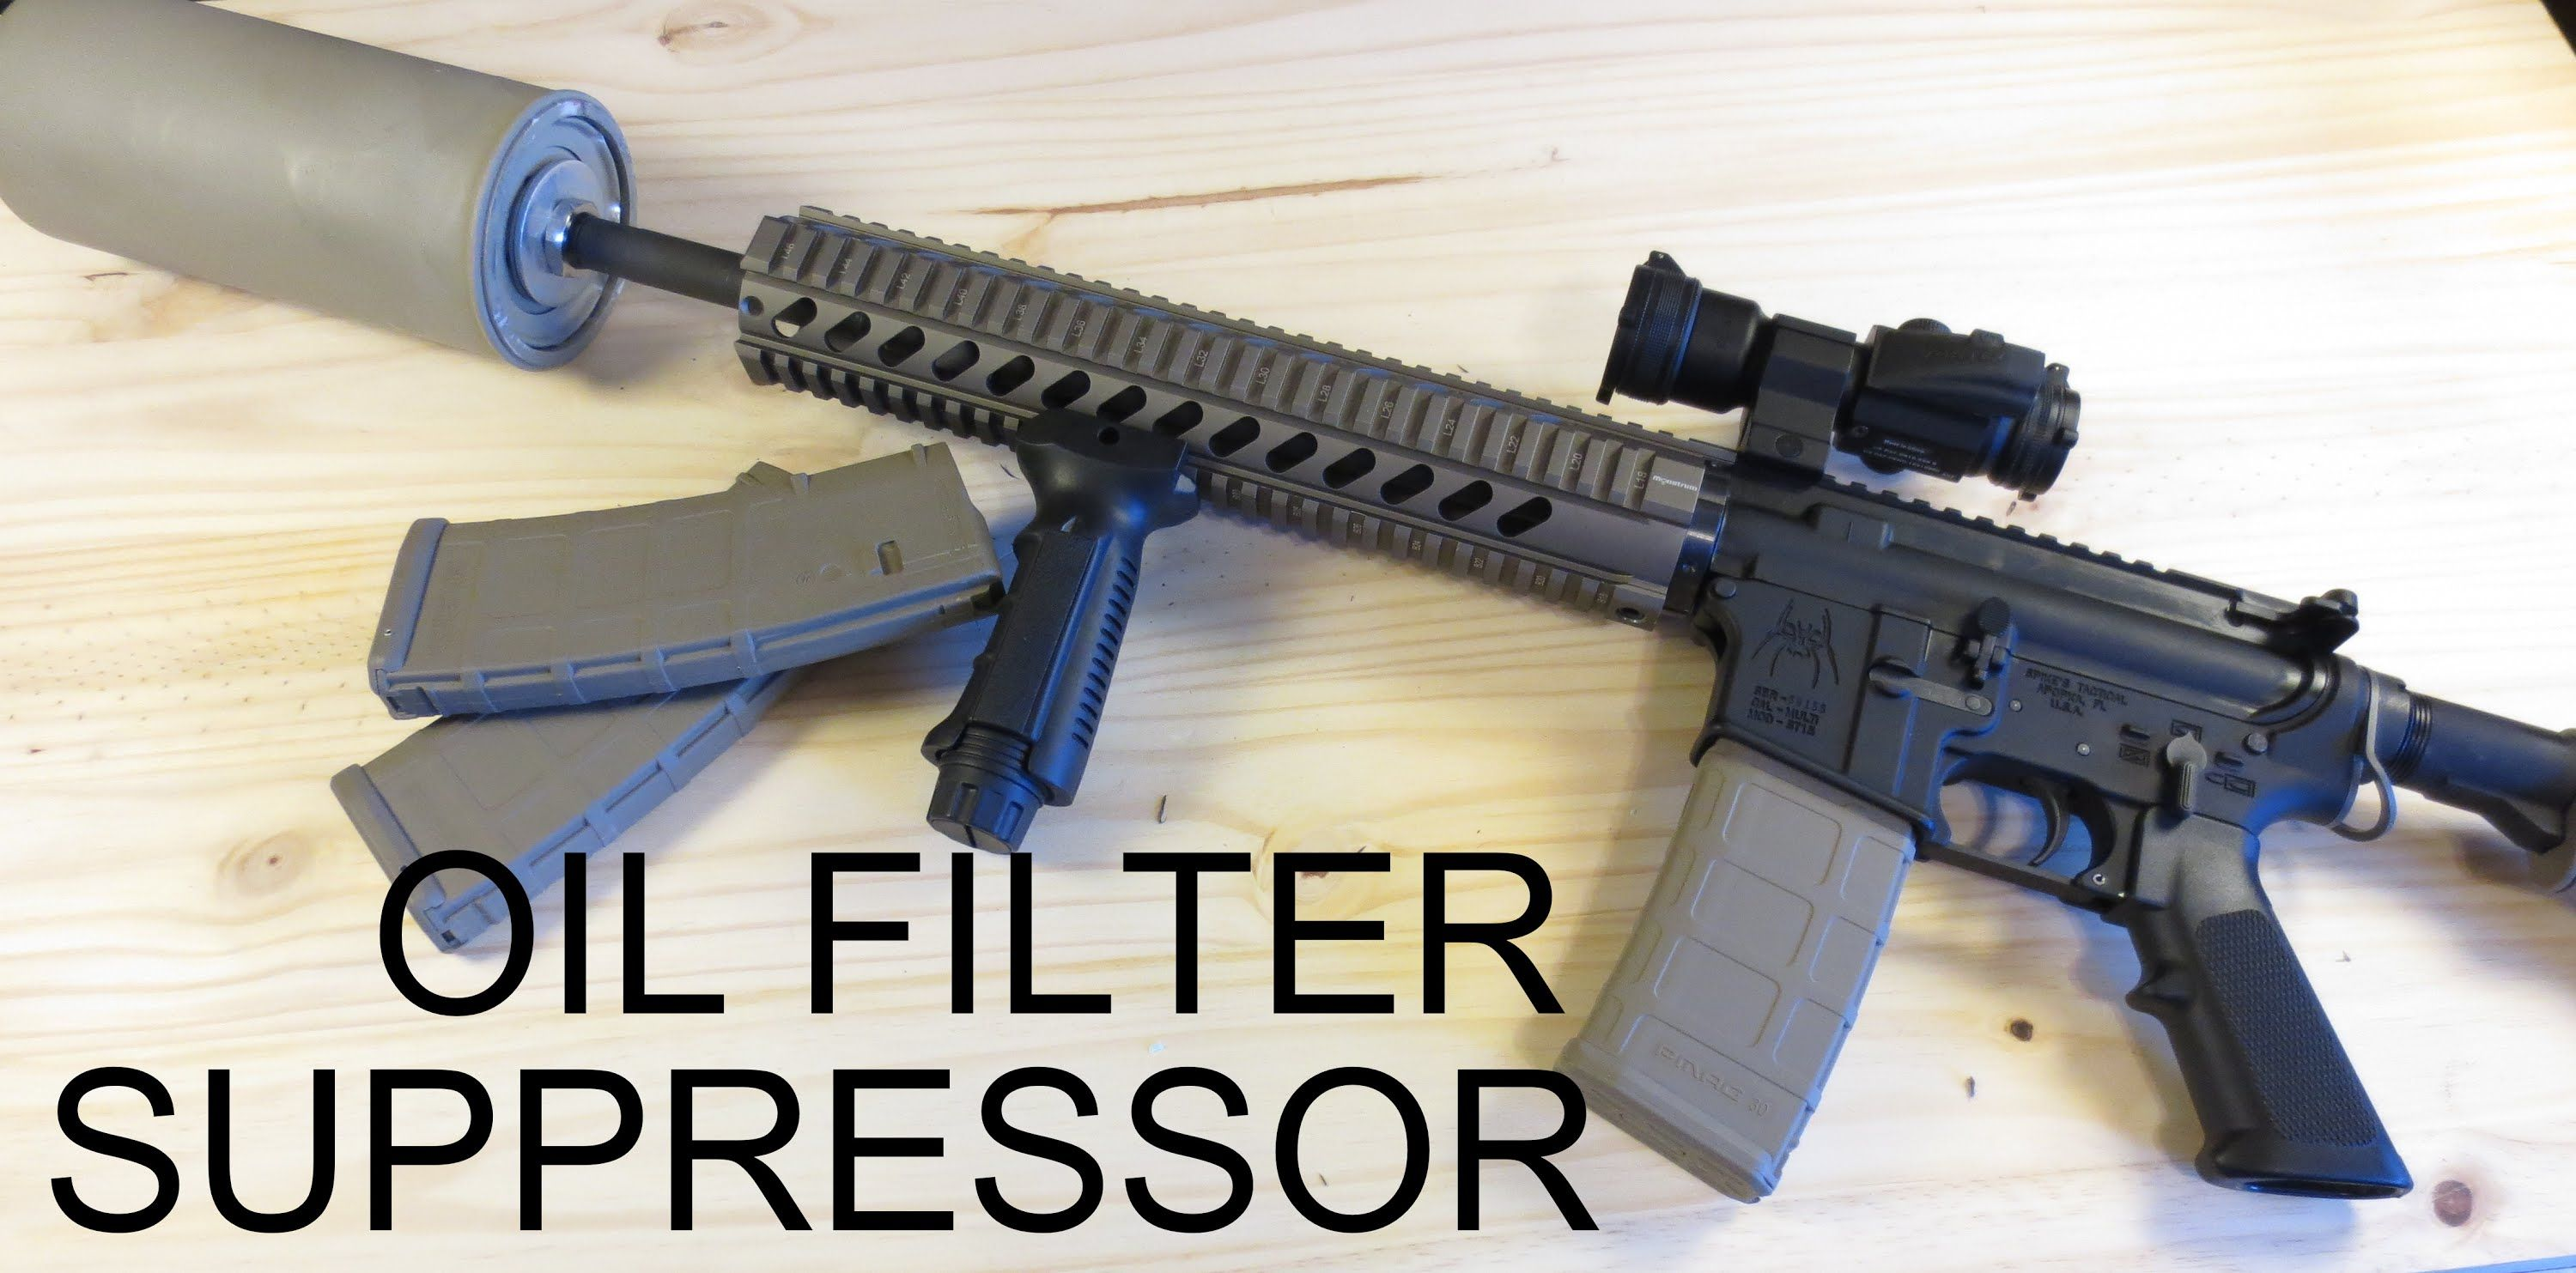 medium resolution of how to build an amazing oil filter suppressor for under 30